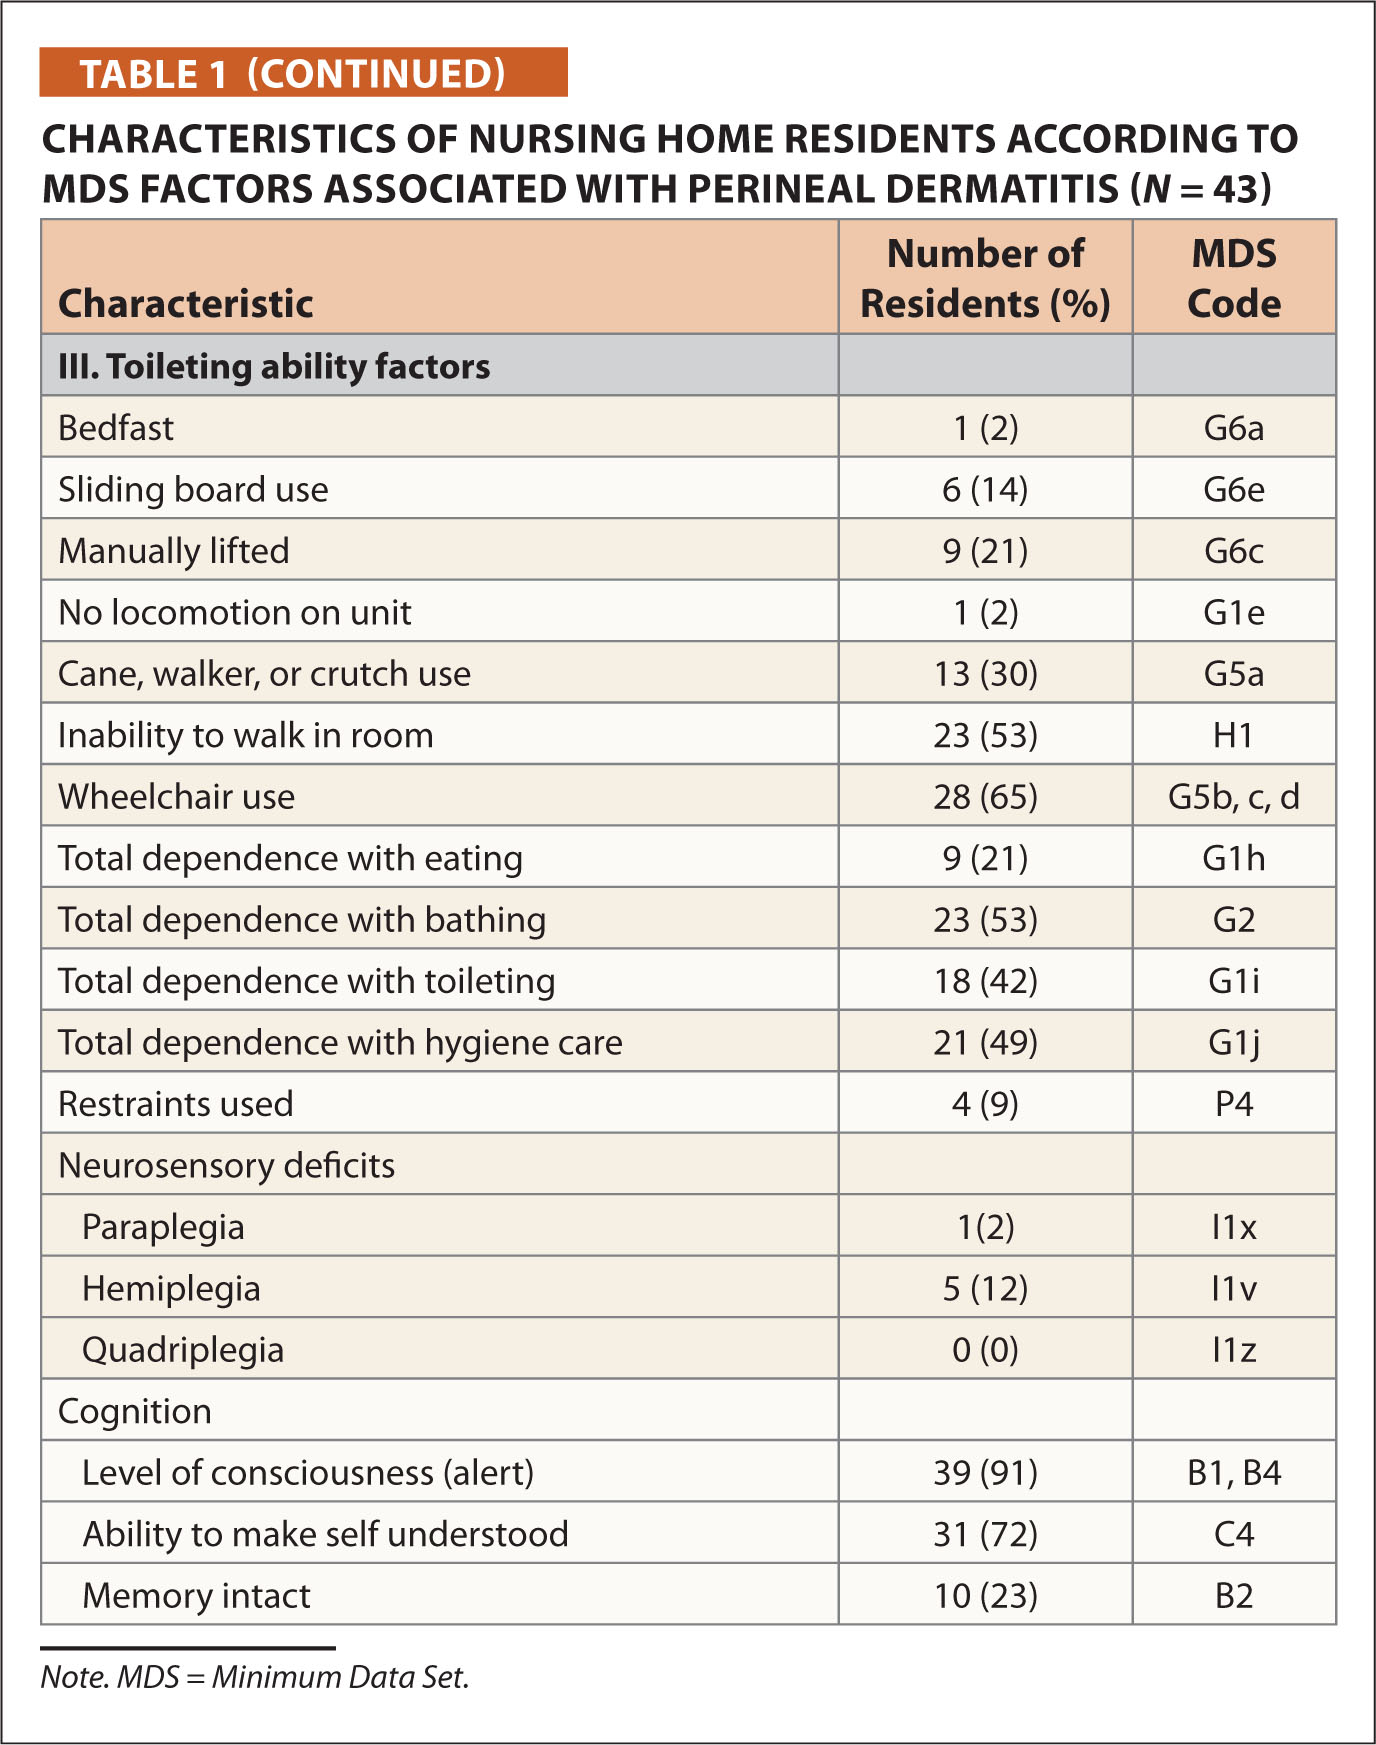 Characteristics of Nursing Home Residents According to MDS Factors Associated with Perineal Dermatitis (N = 43)